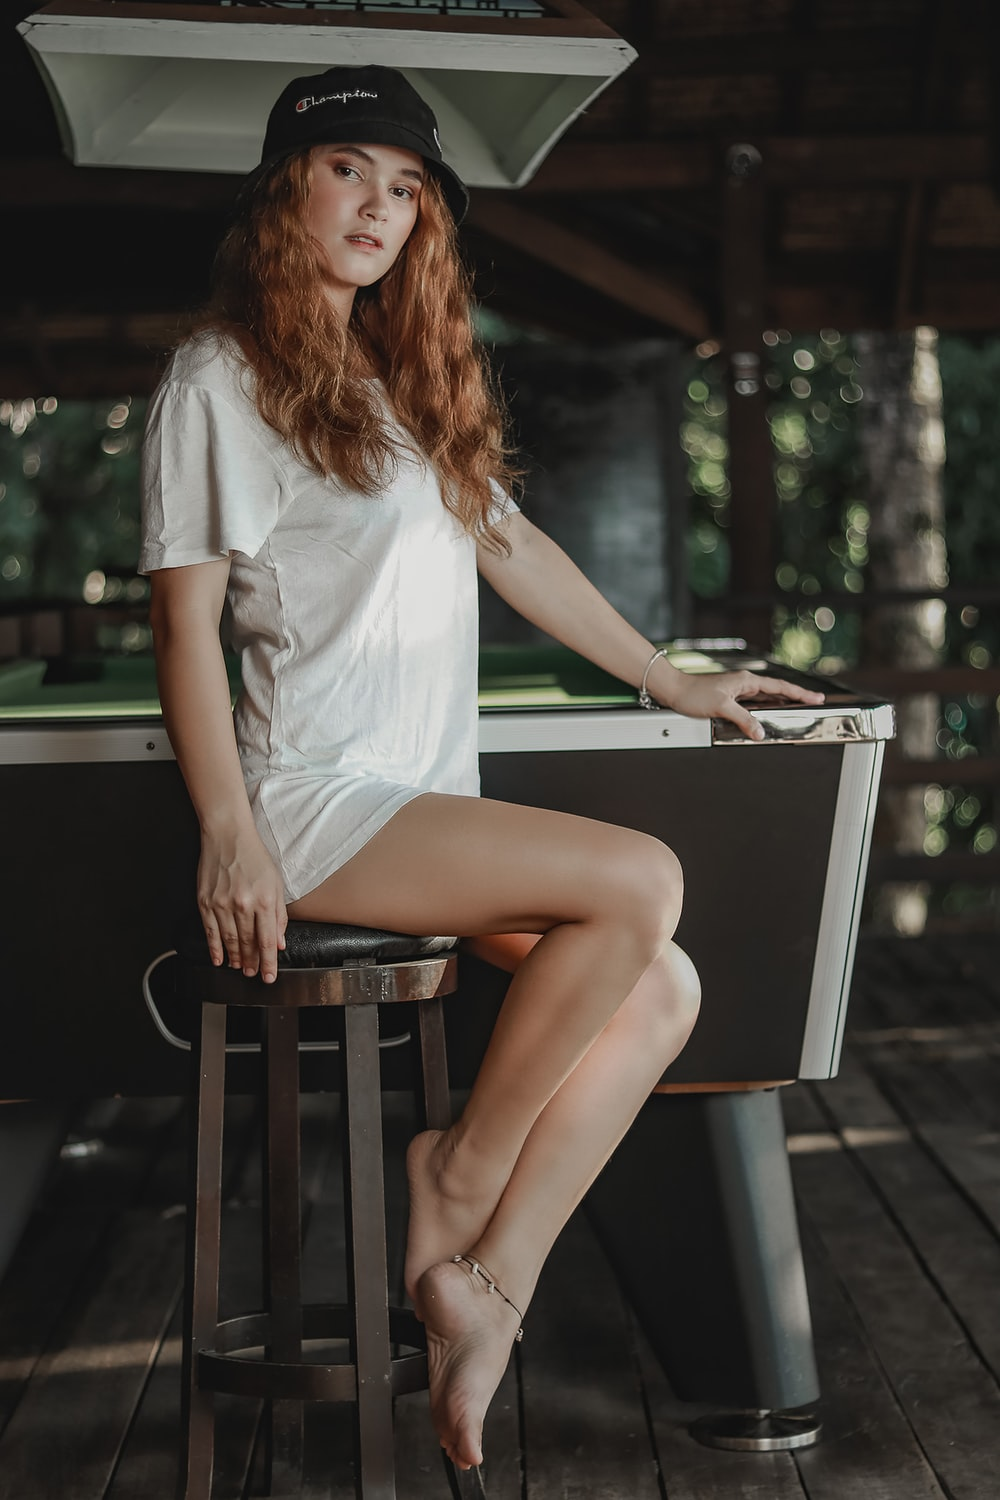 woman in white shirt sitting on black chair